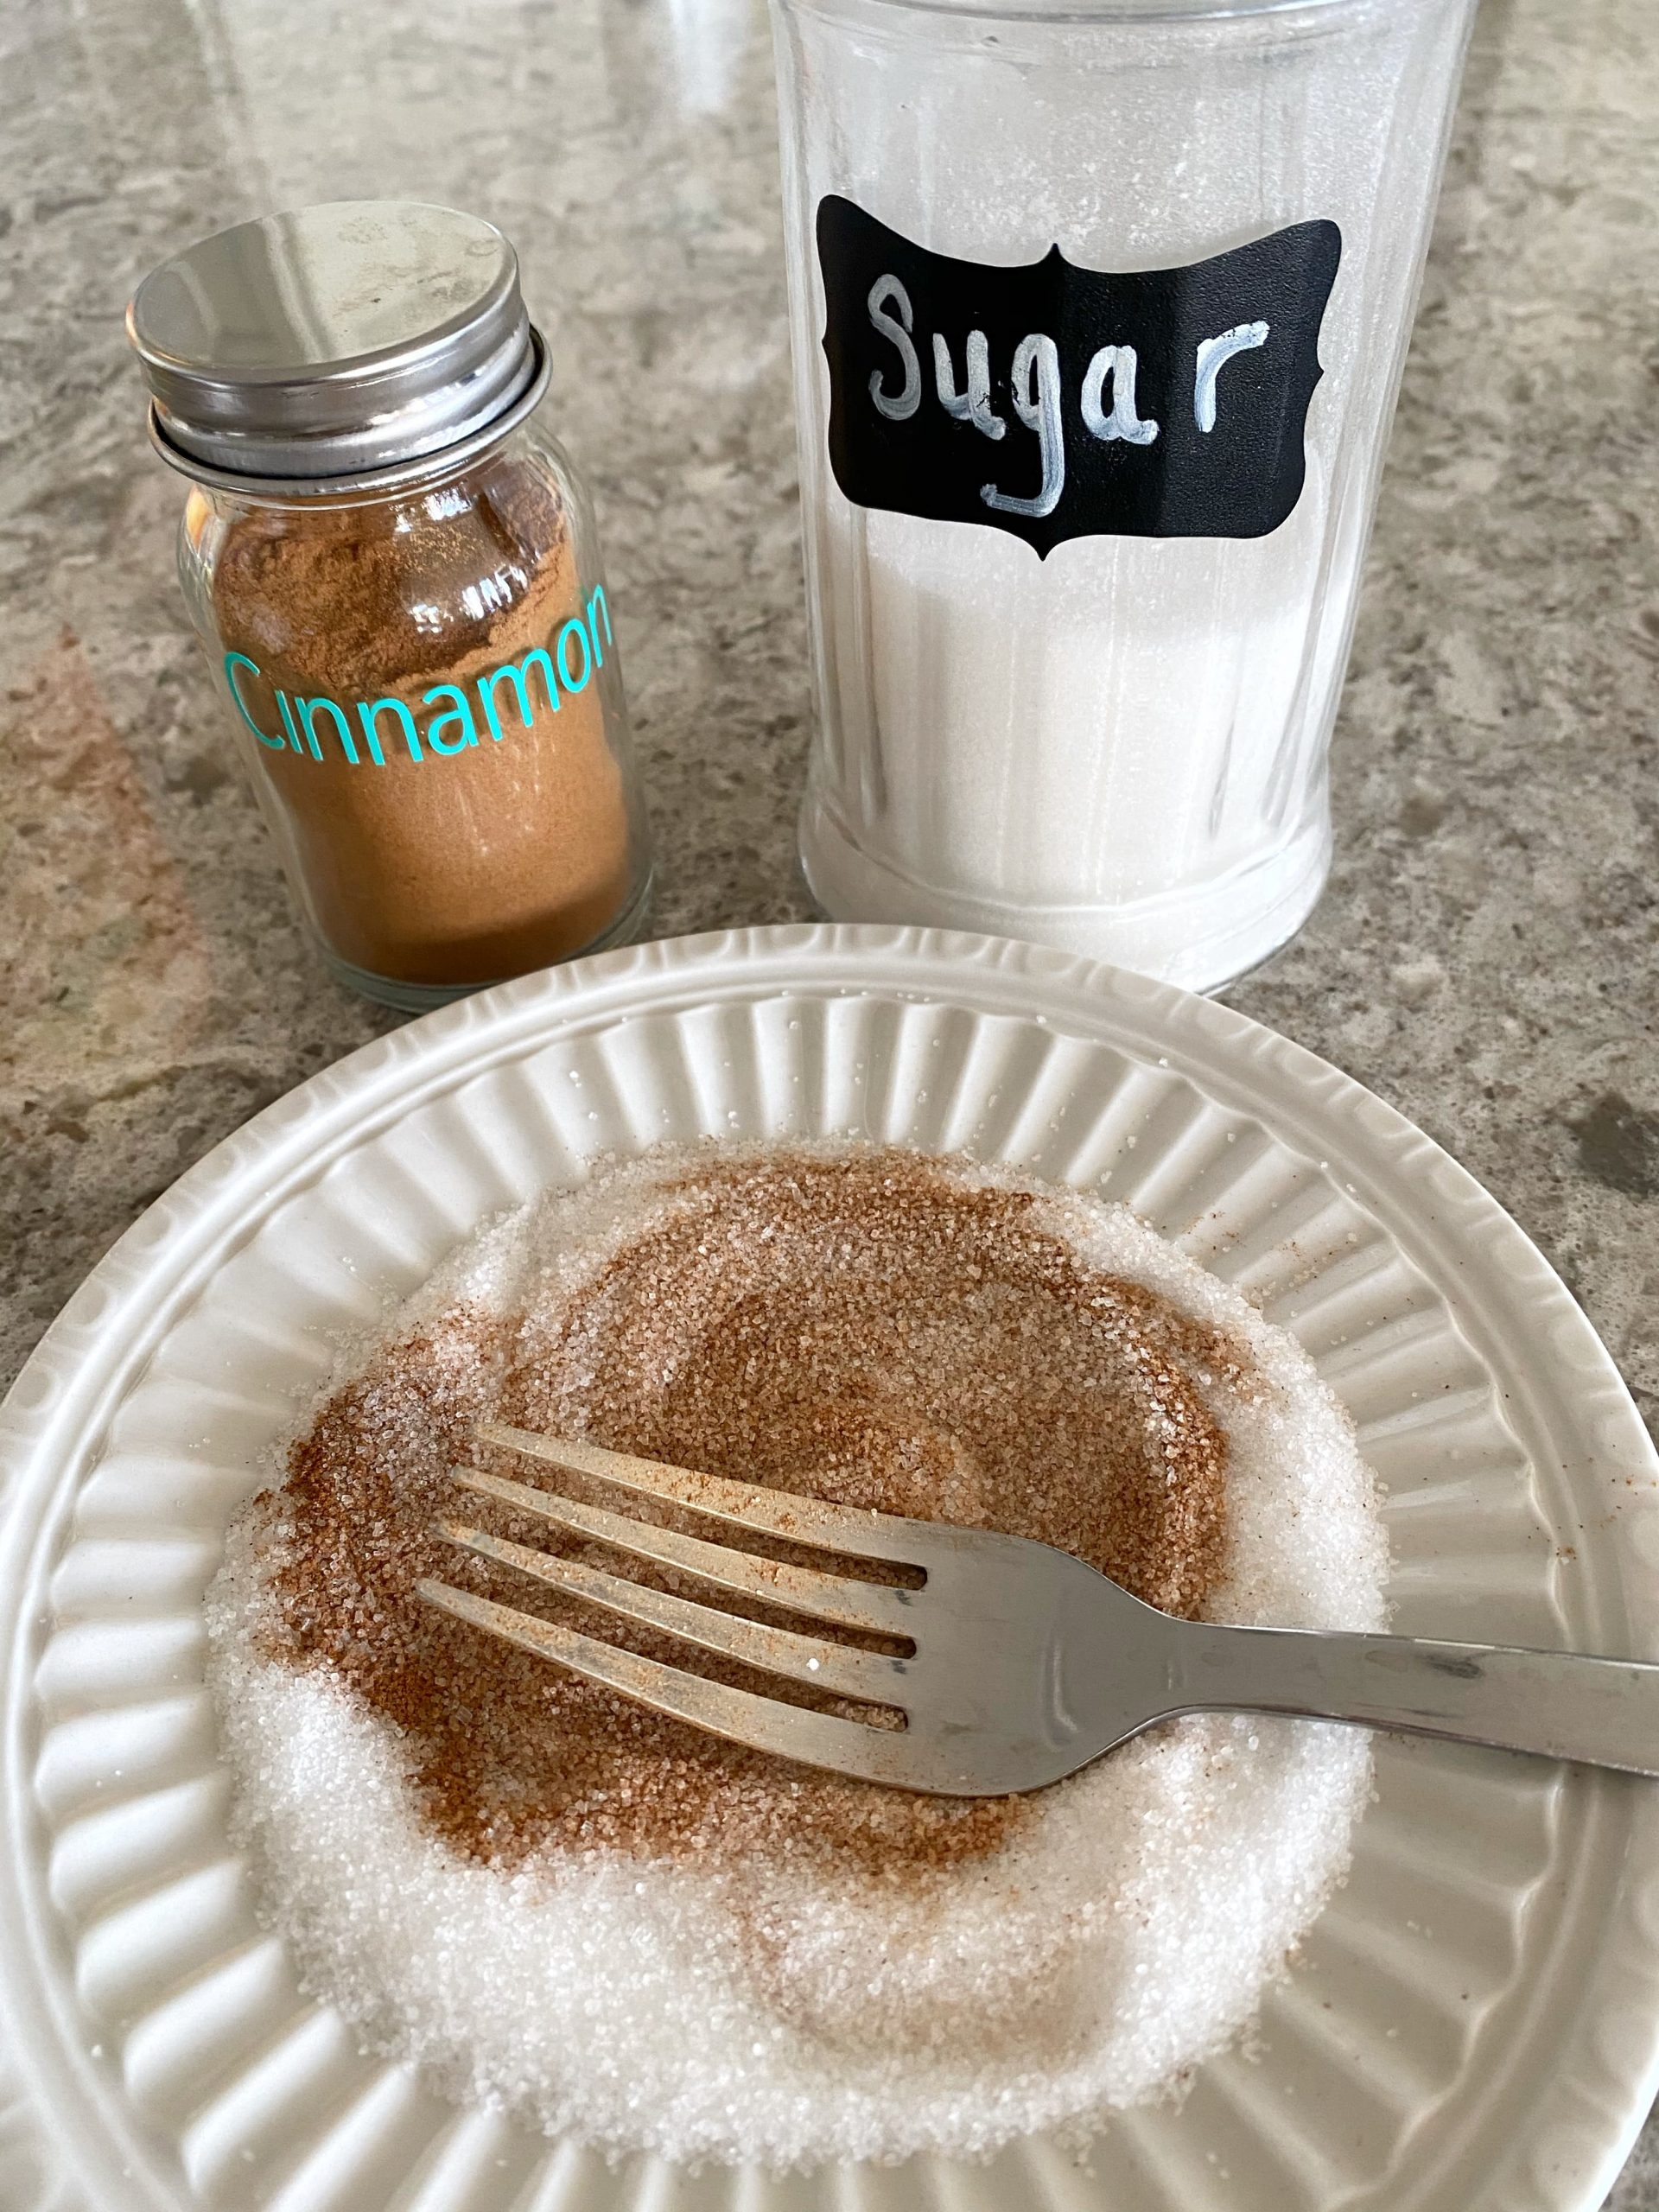 cinnamon and sugar on a plate